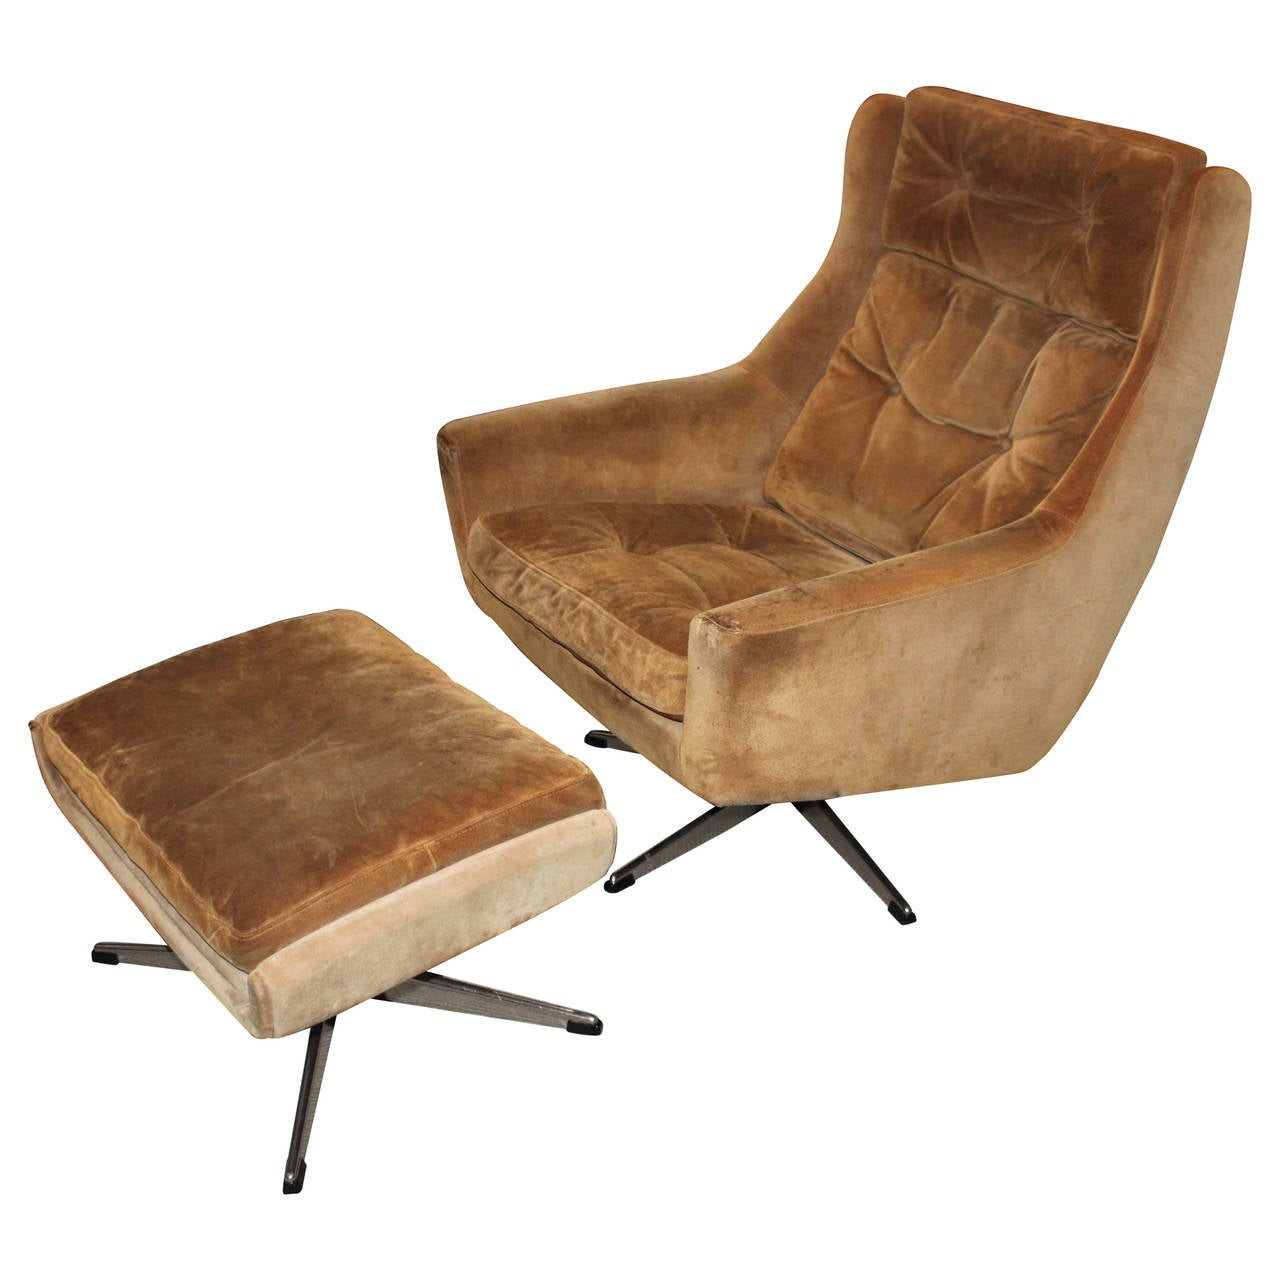 Mid century modern overman lounge chair with ottoman at Mid century chairs